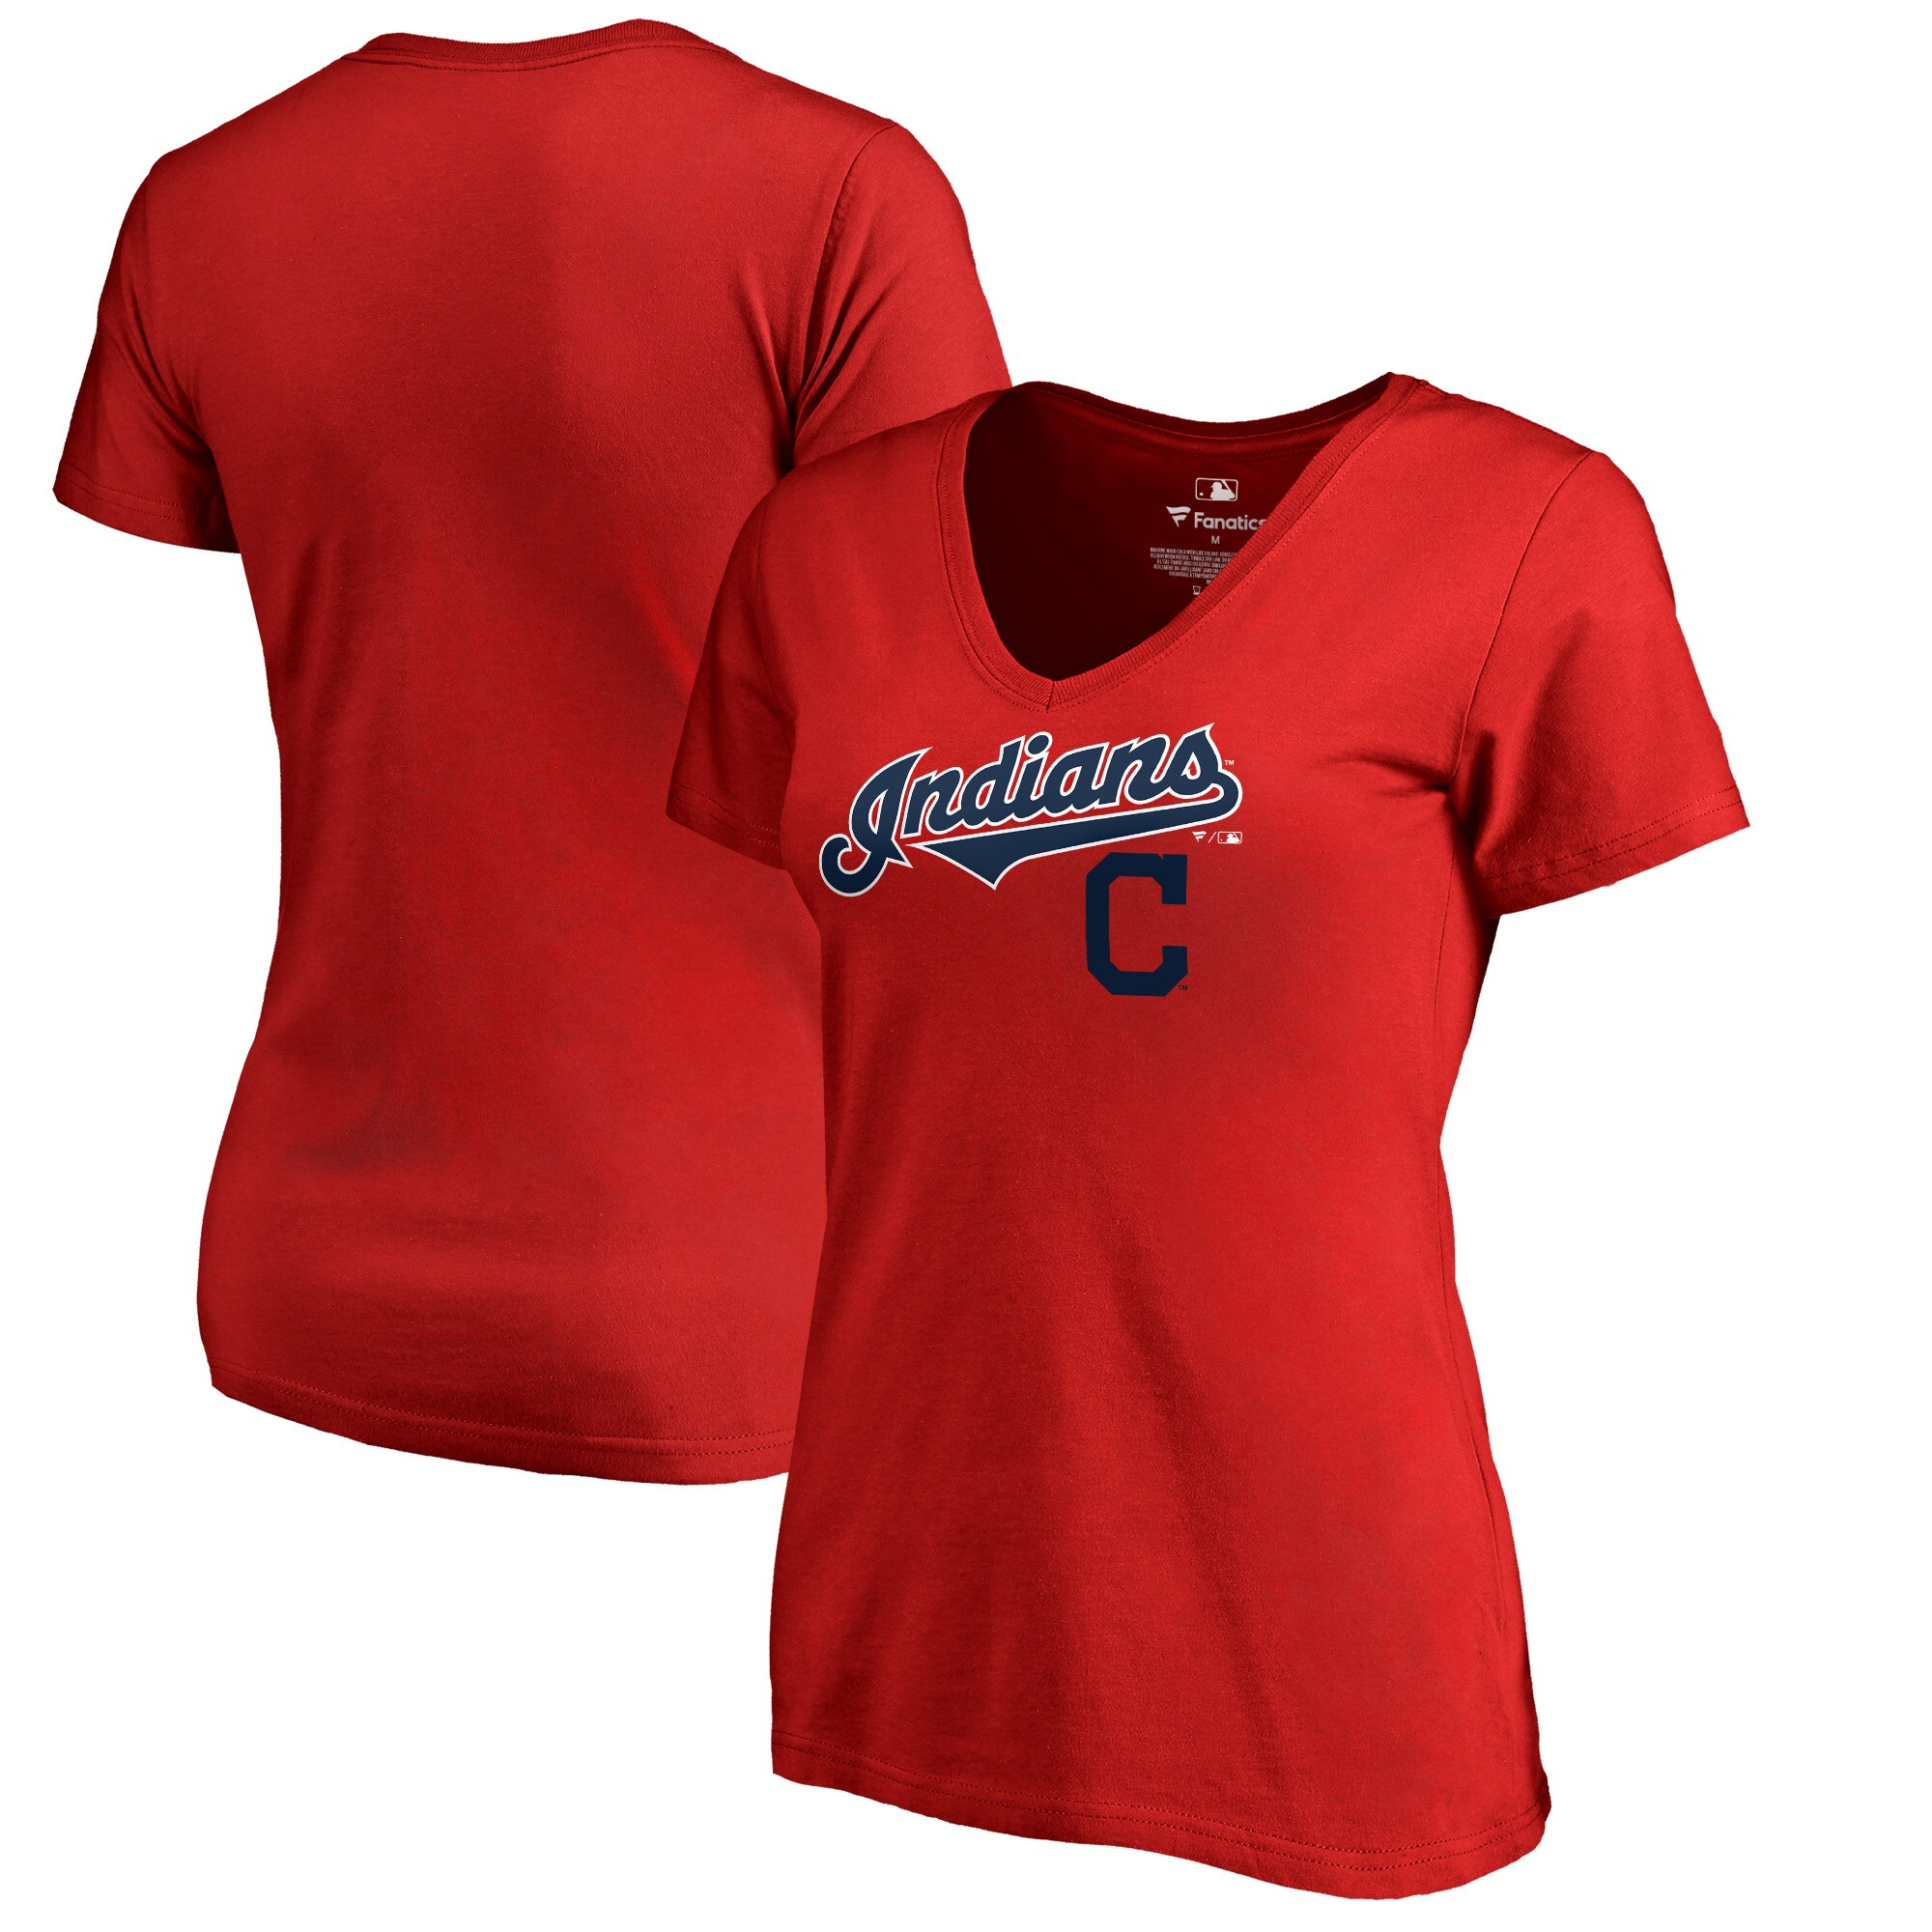 Cleveland Indians Fanatics Branded Women's Plus Sizes Team Lockup T-Shirt - Red